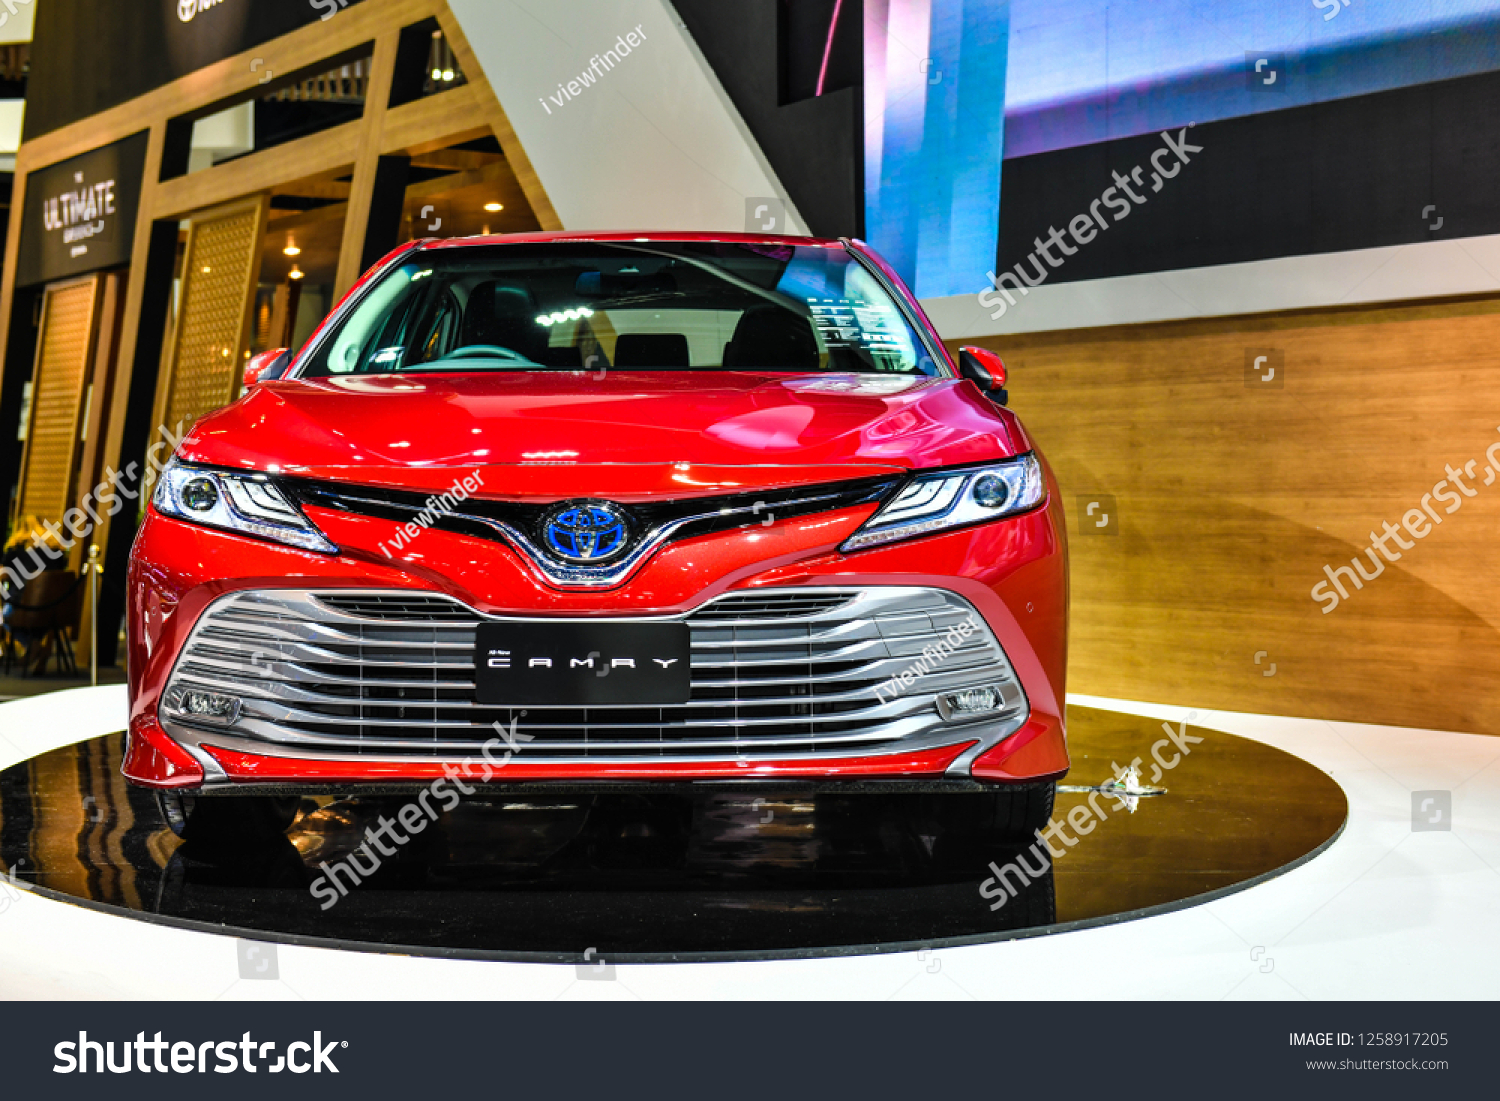 all new camry thailand oli mesin grand veloz nonthaburi november 282018 toyota stock photo 28 2018 2019 on